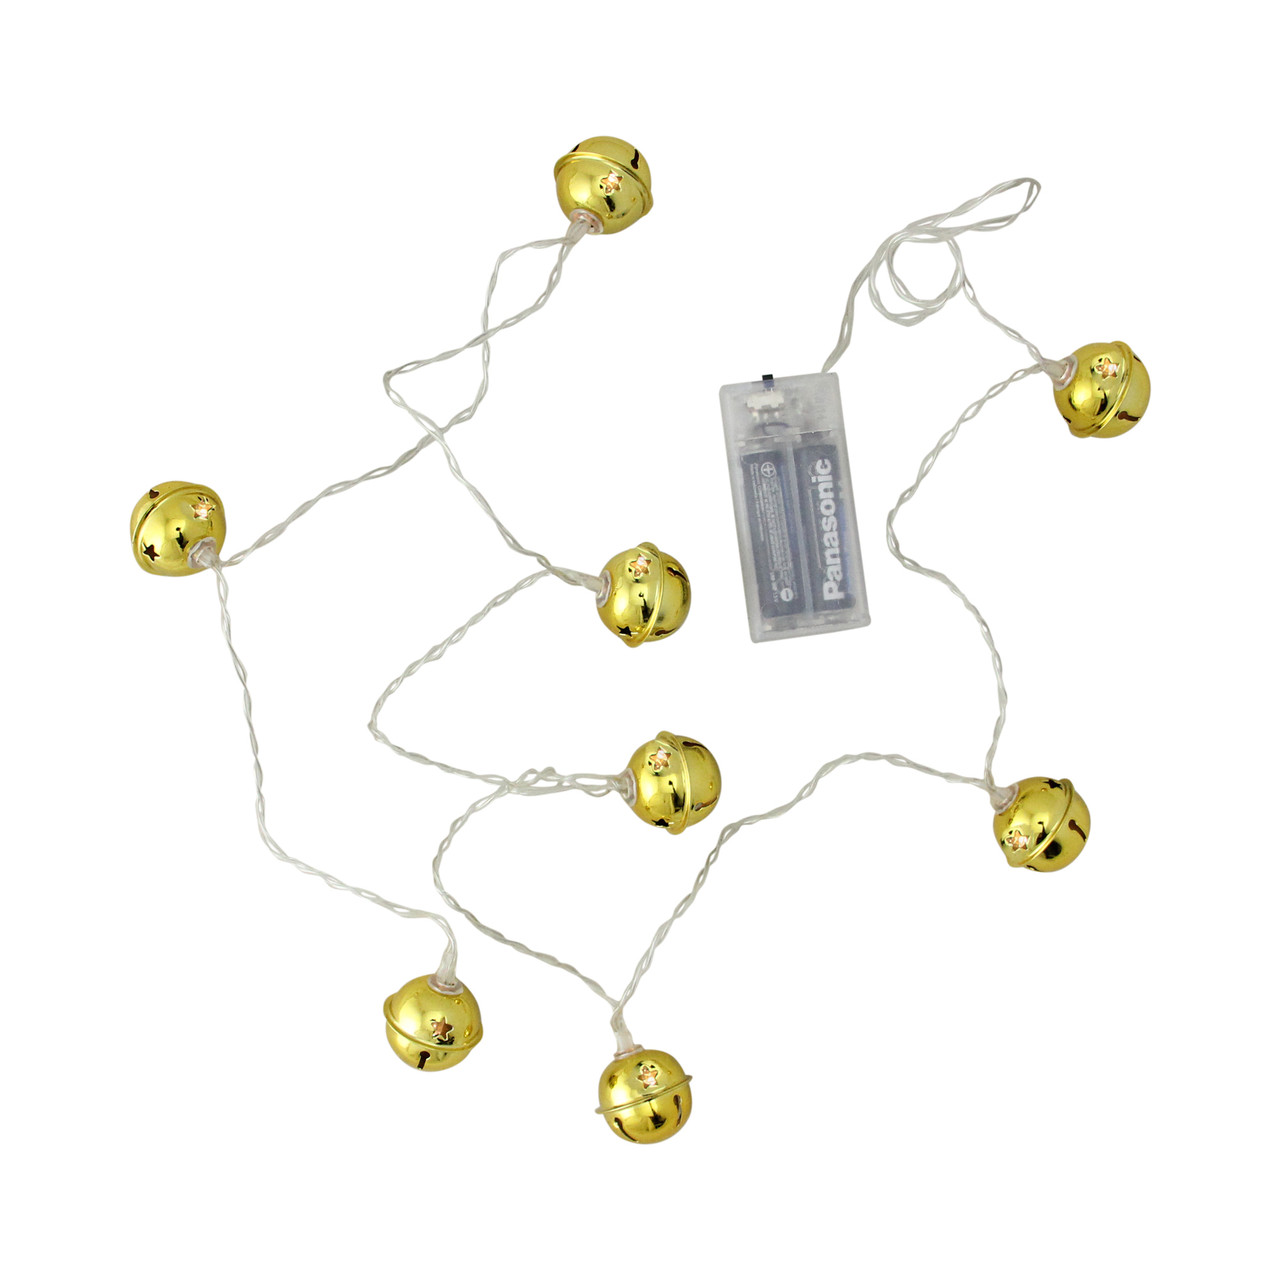 8ct led gold jingle bell with star cut outs battery operated christmas lights clear wire 32606791